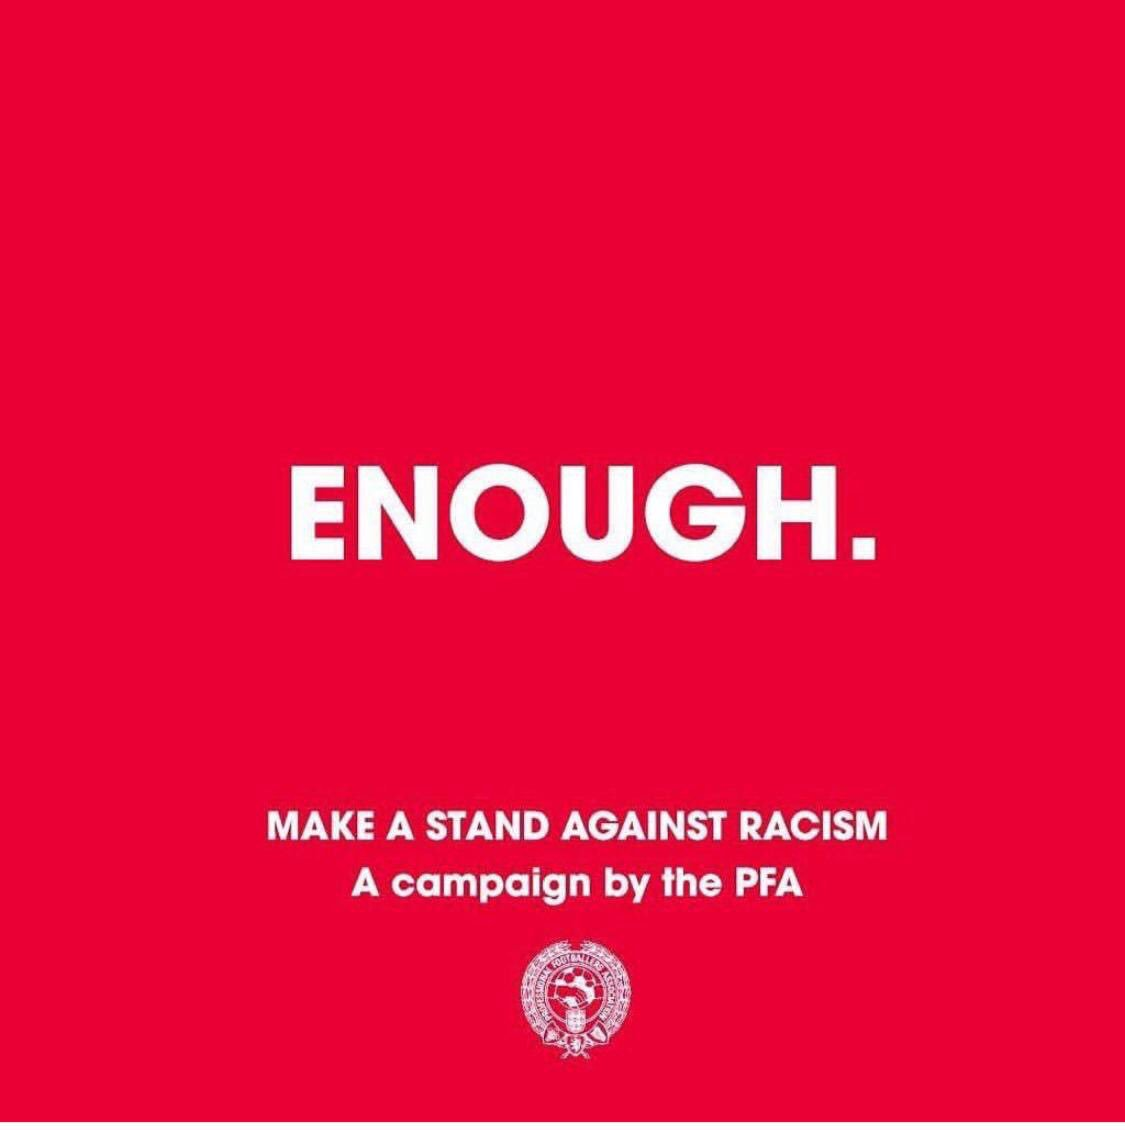 #enough  Professional footballers in England and Wales @PFA took a stand against racism.   We should all take a stand.  React actively when you become a bystander of hateful ideologies, prejudices, xenophobia, racism or antisemitism.   https://www.thepfa.com/news/2019/4/18/enough-pfa-launches-anti-racism-campaign…